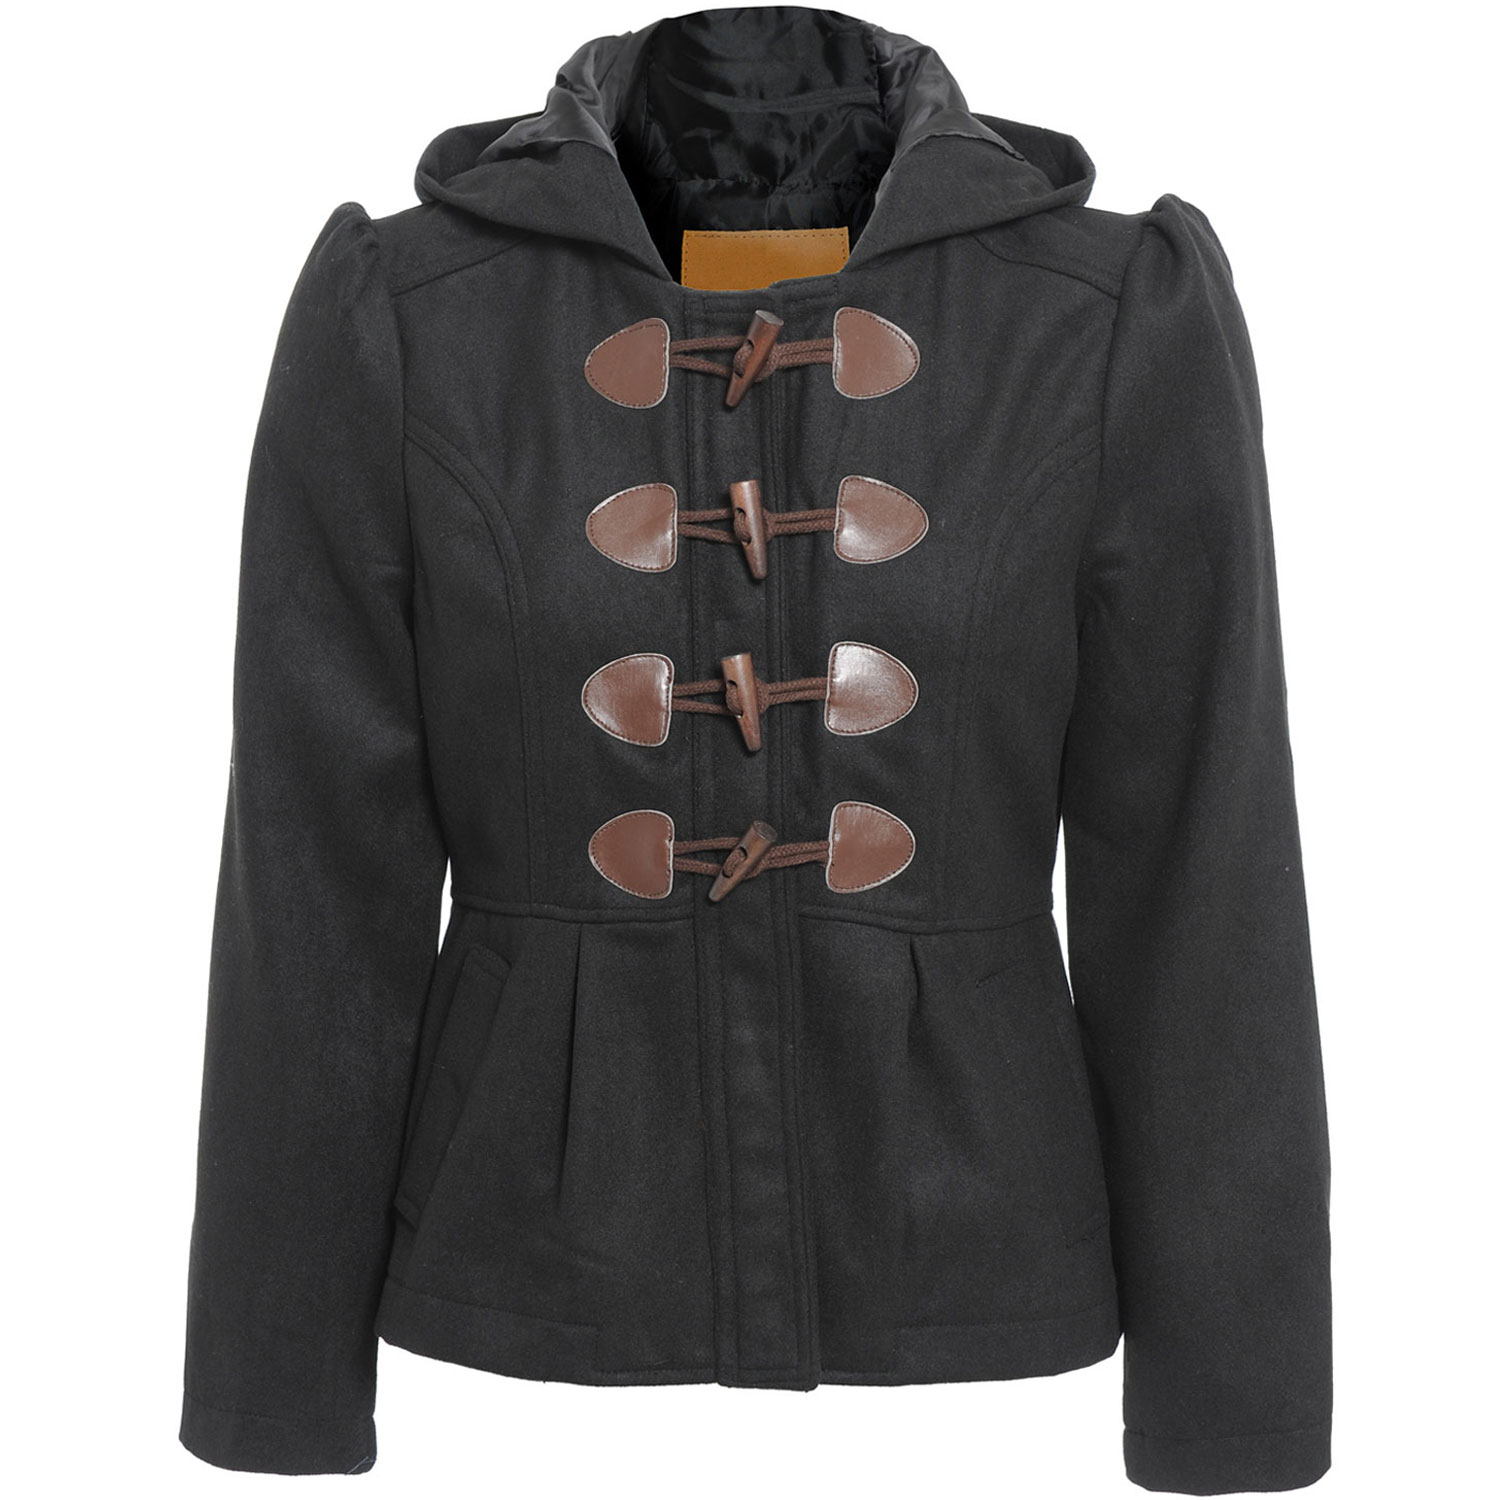 Womens black duffle coat with hood